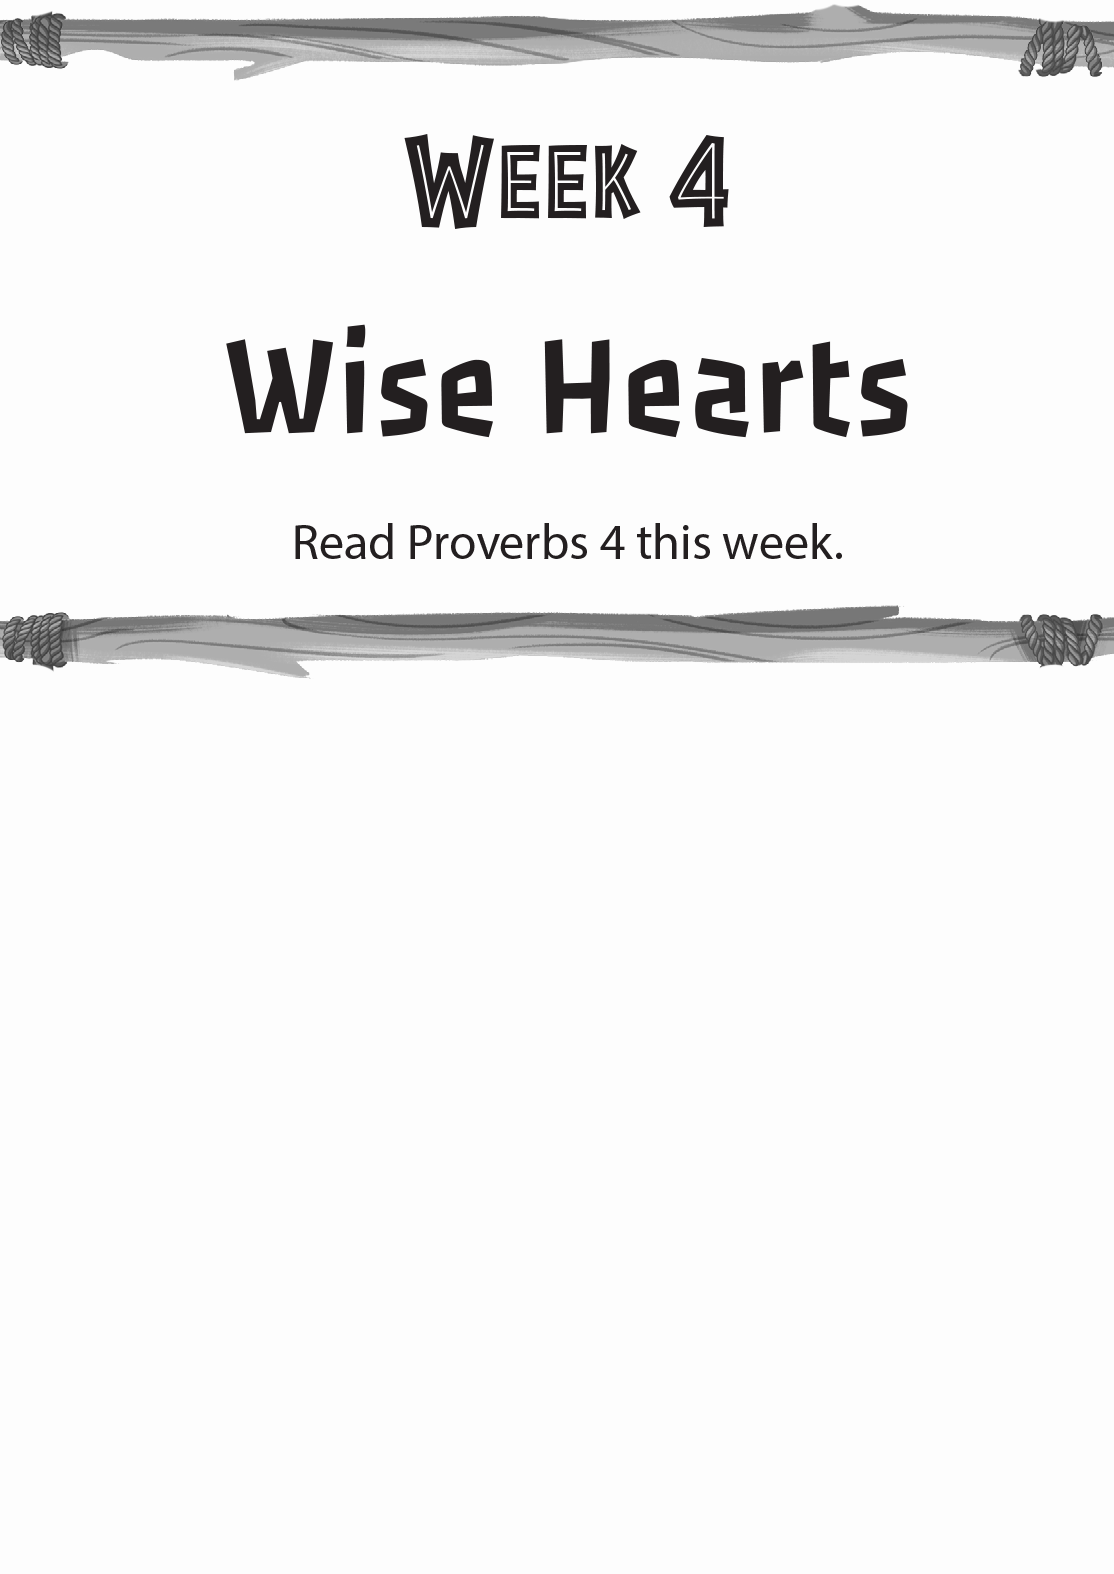 Wise Hearts